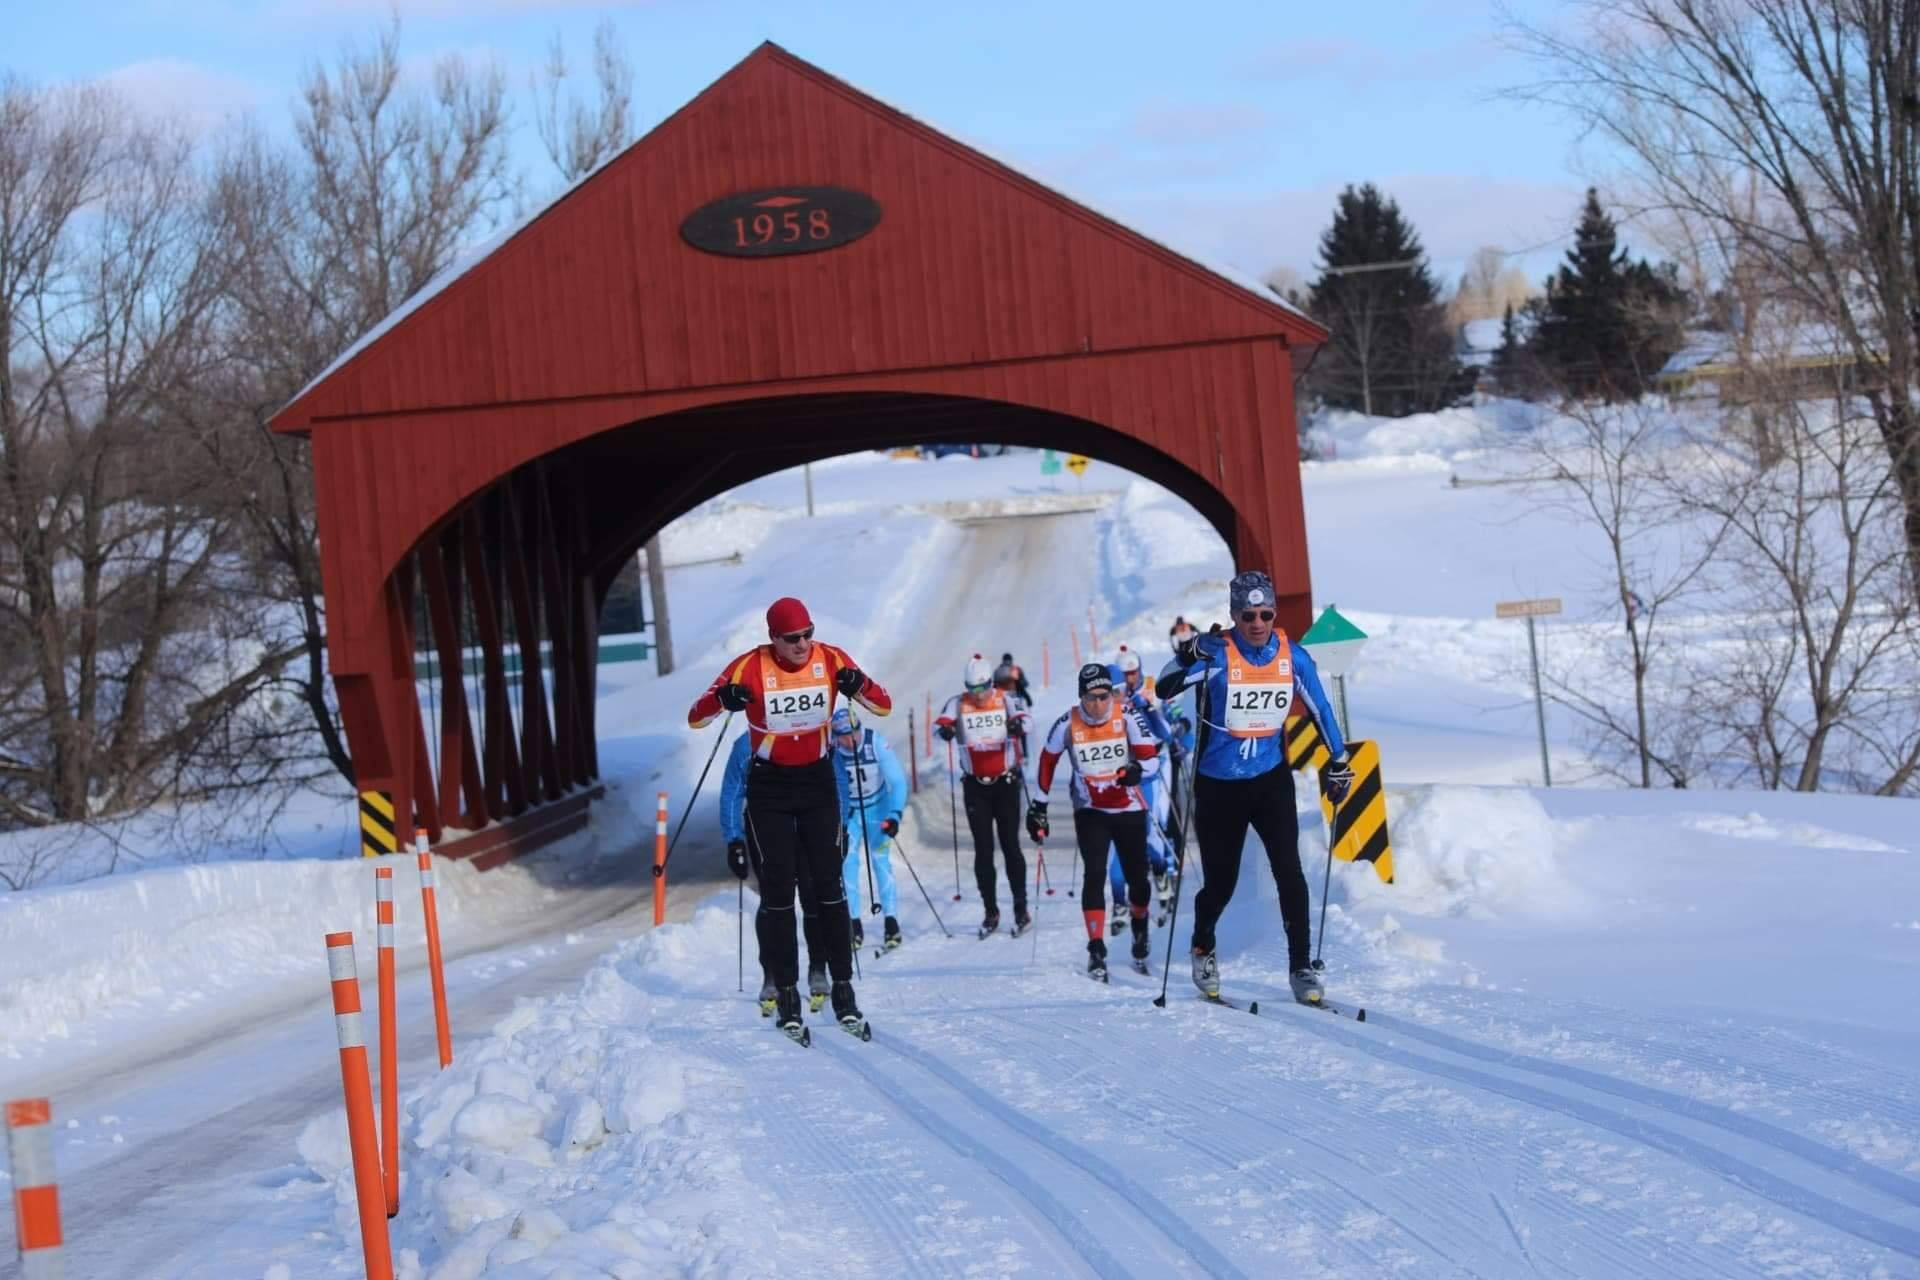 iTAB move into brand new ski sector after partnering with Gatineau Loppet